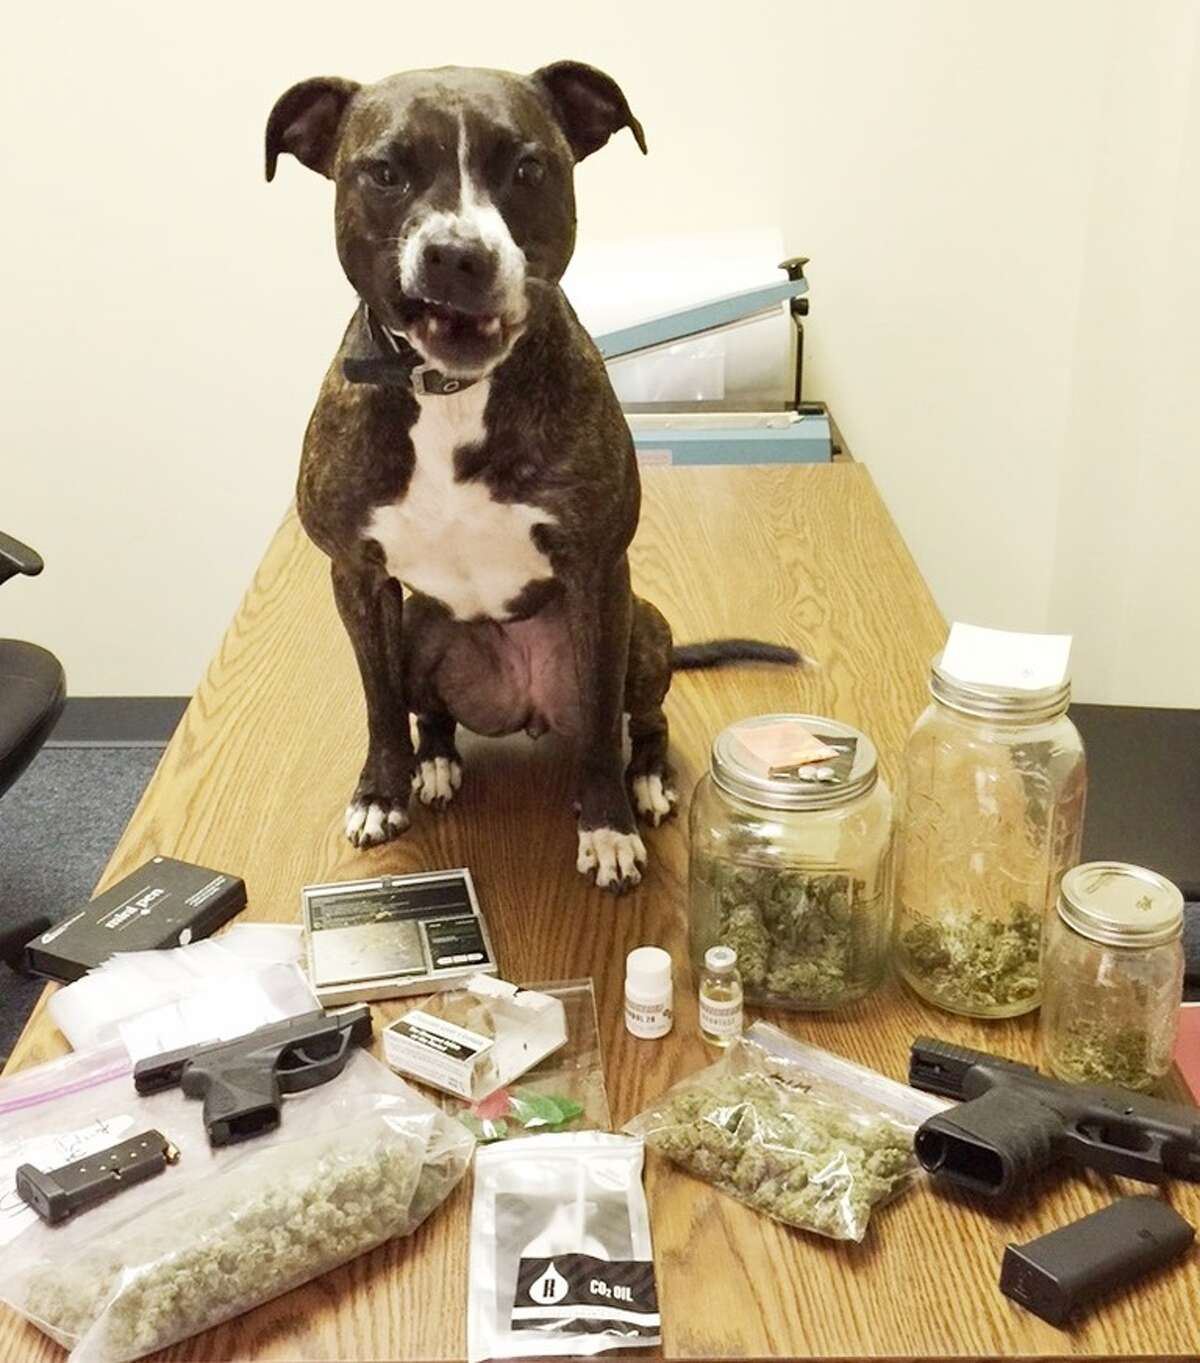 Montgomery County Precinct 4 K9 officer Libby stands over a stash of drugs and guns she helped recover during a felony drug bust in Splendora. (Source: Montgomery County Police Reporter)